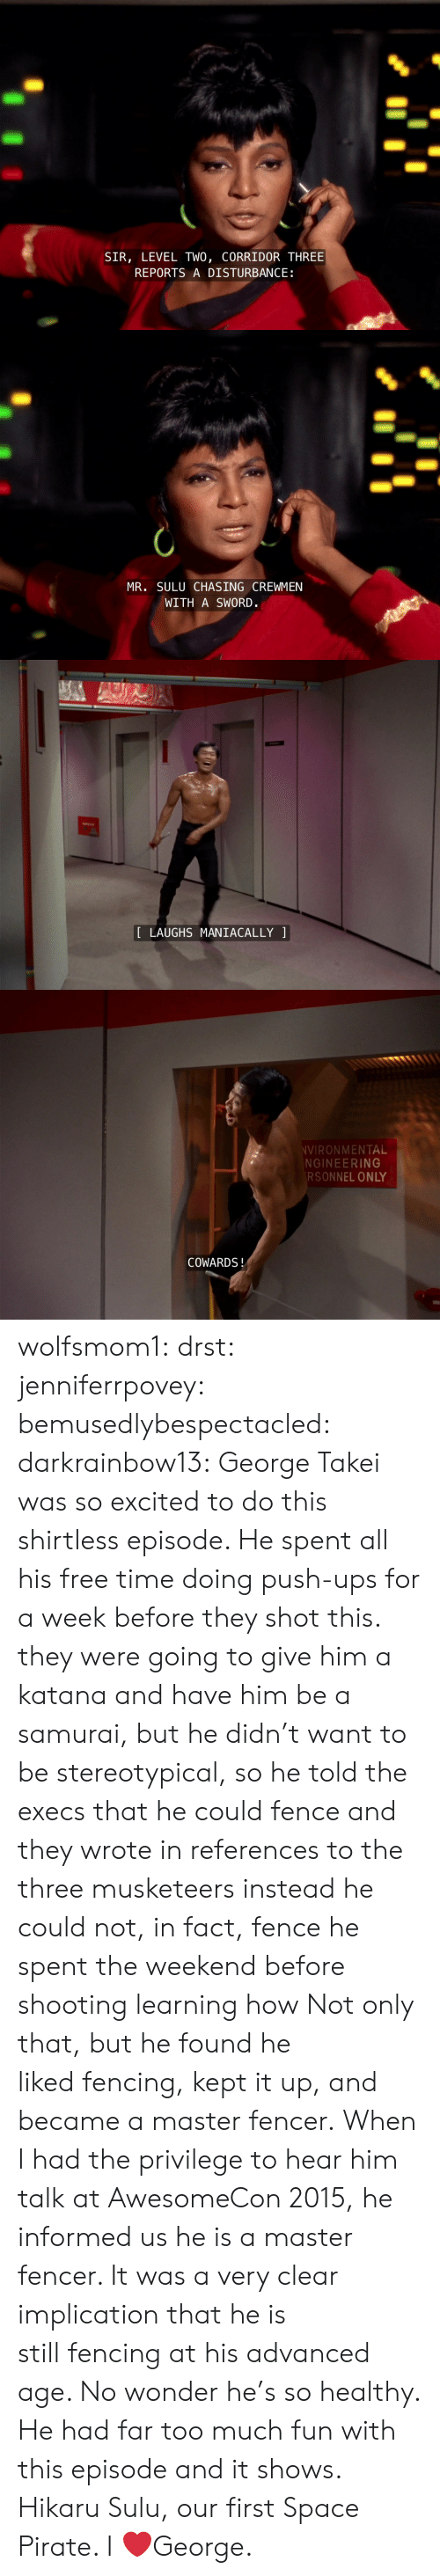 katana: SIR, LEVEL TWO, CORRIDOR THREE  REPORTS A DISTURBANCE   MR. SULU CHASING CREWMEN  WITH A SWORD.   LAUGHS MANIACALLY   VIRONMENTAL  NGINEERING  RSONNEL ONLY  COWARDS! wolfsmom1:  drst:   jenniferrpovey:  bemusedlybespectacled:  darkrainbow13:  George Takei was so excited to do this shirtless episode. He spent all his free time doing push-ups for a week before they shot this.  they were going to give him a katana and have him be a samurai, but he didn't want to be stereotypical, so he told the execs that he could fence and they wrote in references to the three musketeers instead he could not, in fact, fence he spent the weekend before shooting learning how  Not only that, but he found he likedfencing, kept it up, and became a master fencer. When I had the privilege to hear him talk at AwesomeCon 2015, he informed us he isa master fencer. It was a very clear implication that he is stillfencing at his advanced age. No wonder he's so healthy. He had fartoo much fun with this episode and it shows.   Hikaru Sulu, our first Space Pirate.    I ❤️George.